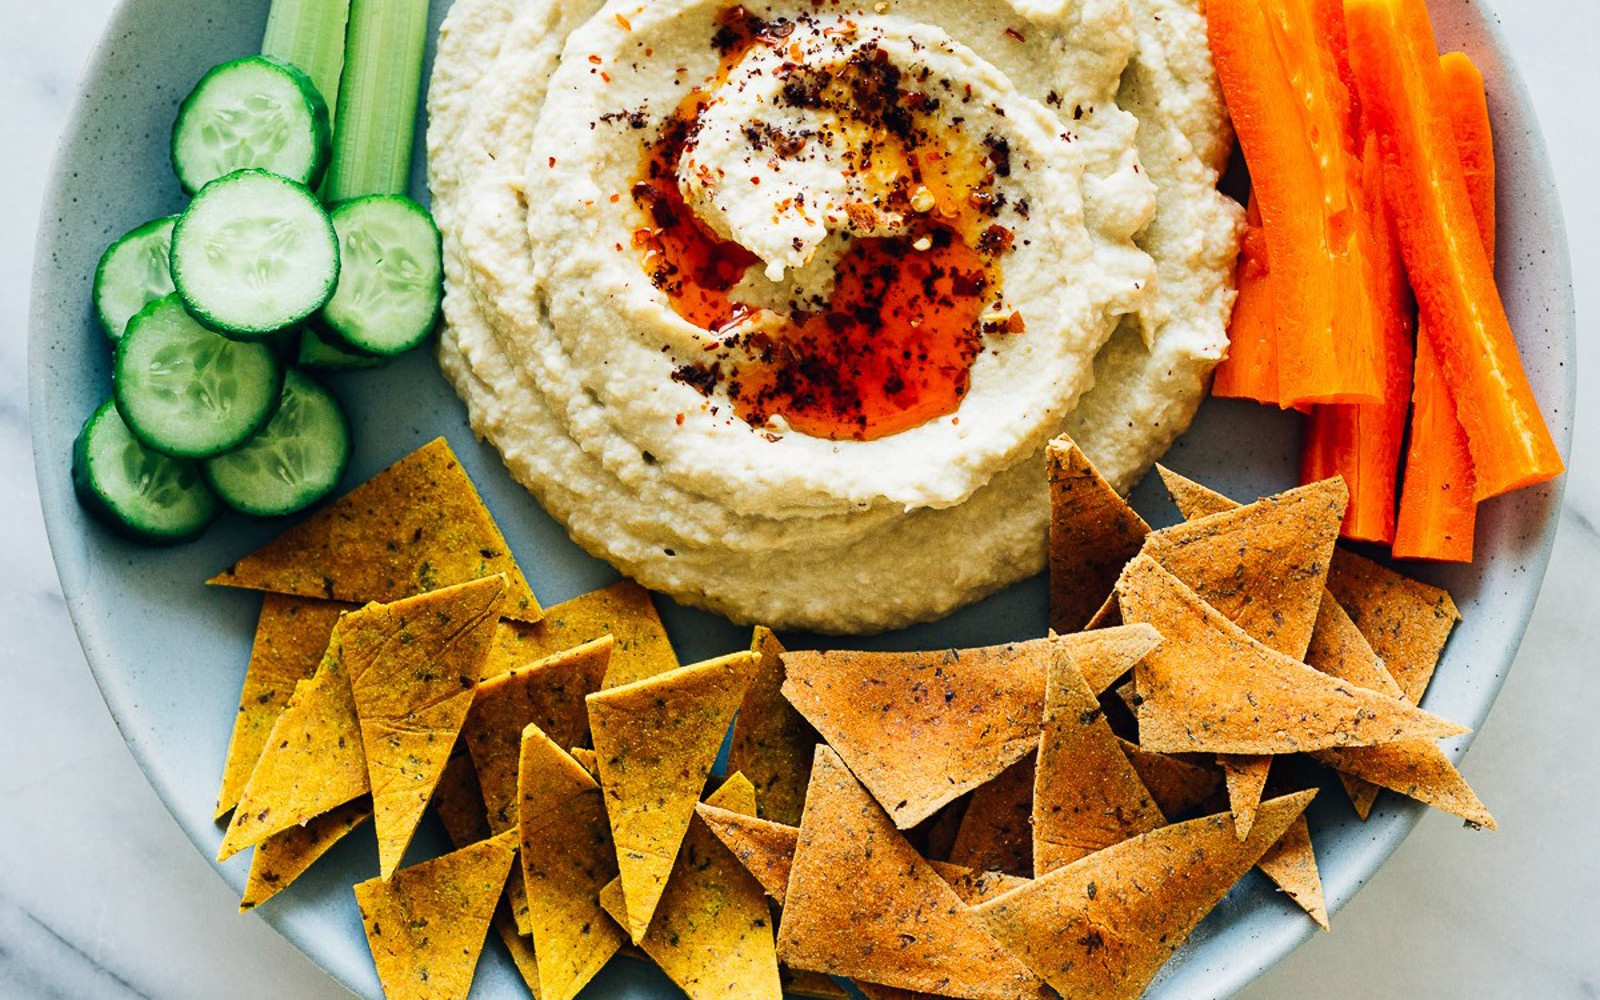 Vegan Eggplant Hummus With Turmeric Crackers and Tomato Cilantro Crackers